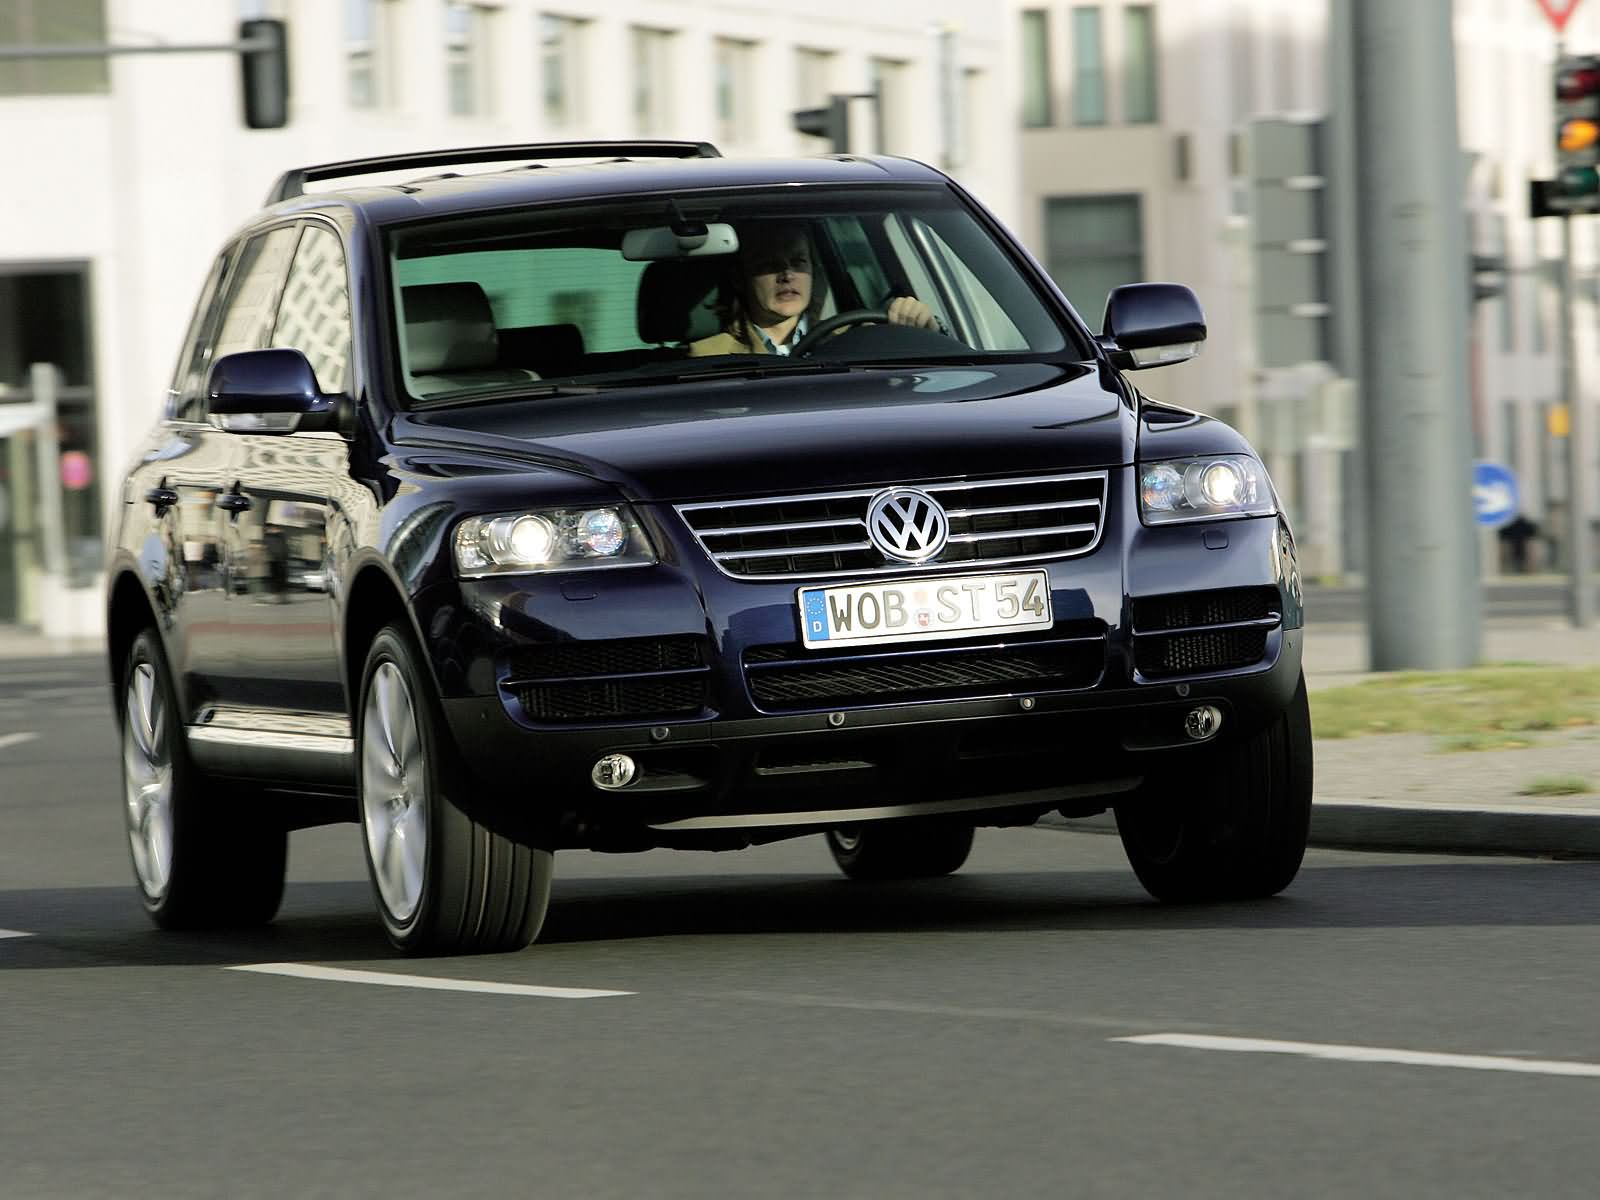 volkswagen touareg v6 tdi 2006 volkswagen touareg v6 tdi 2006 photo 03 car in pictures car. Black Bedroom Furniture Sets. Home Design Ideas